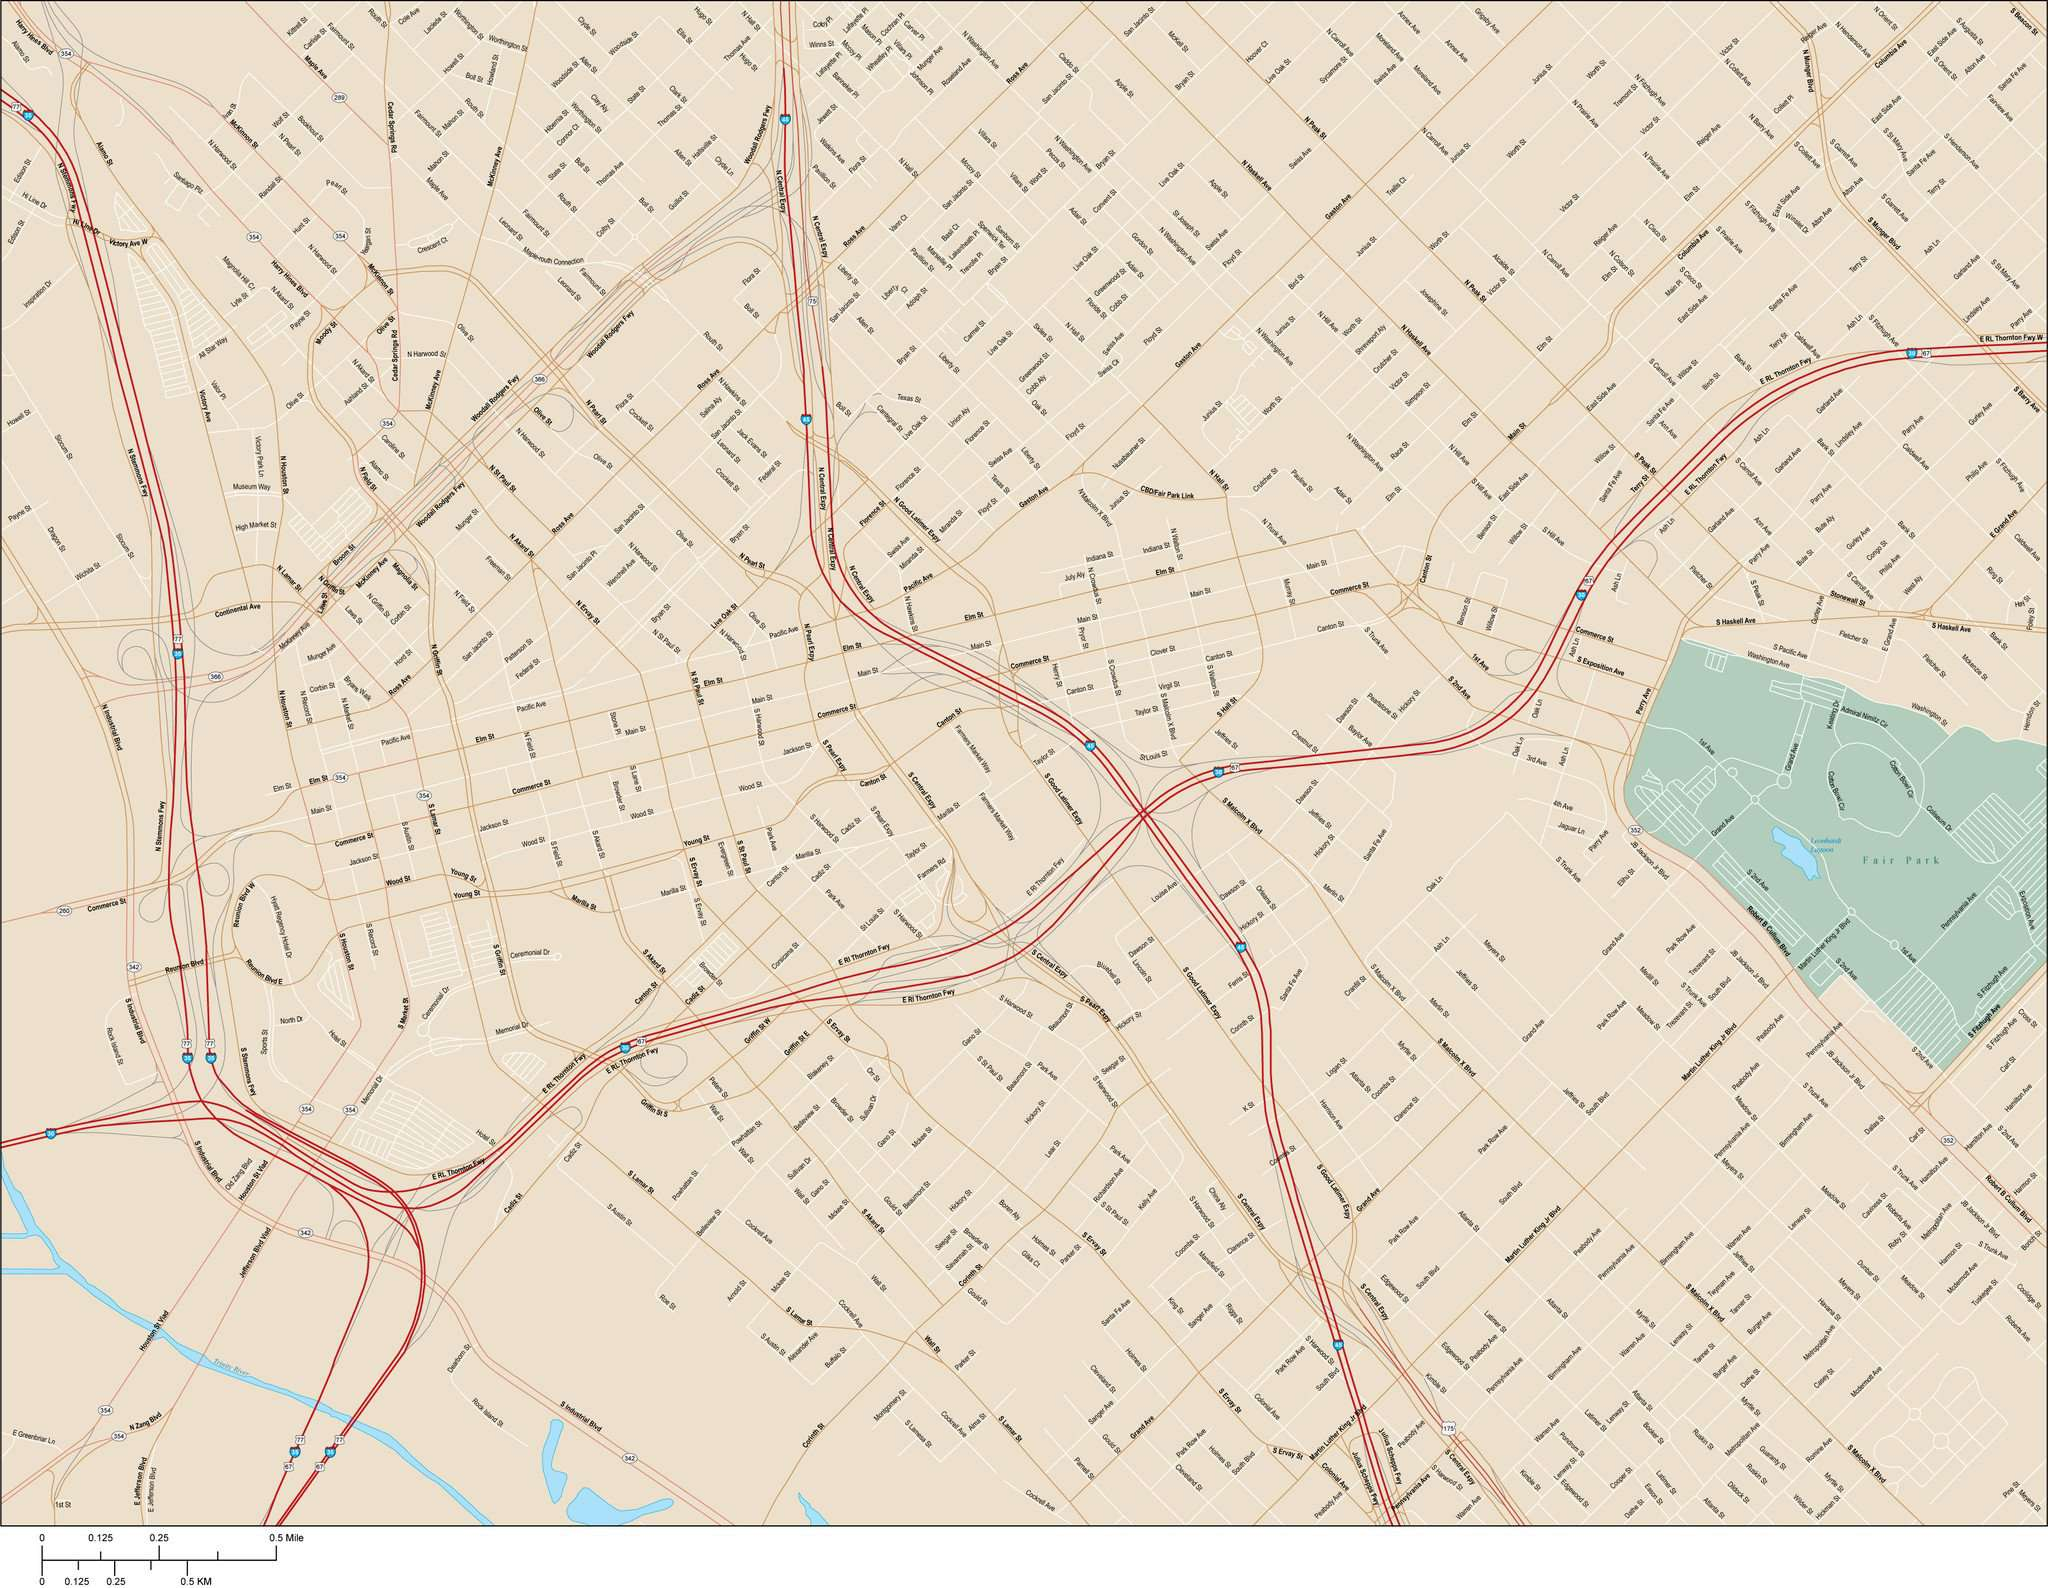 Dallas Map with Local Streets in Adobe Illustrator vector format DLS on